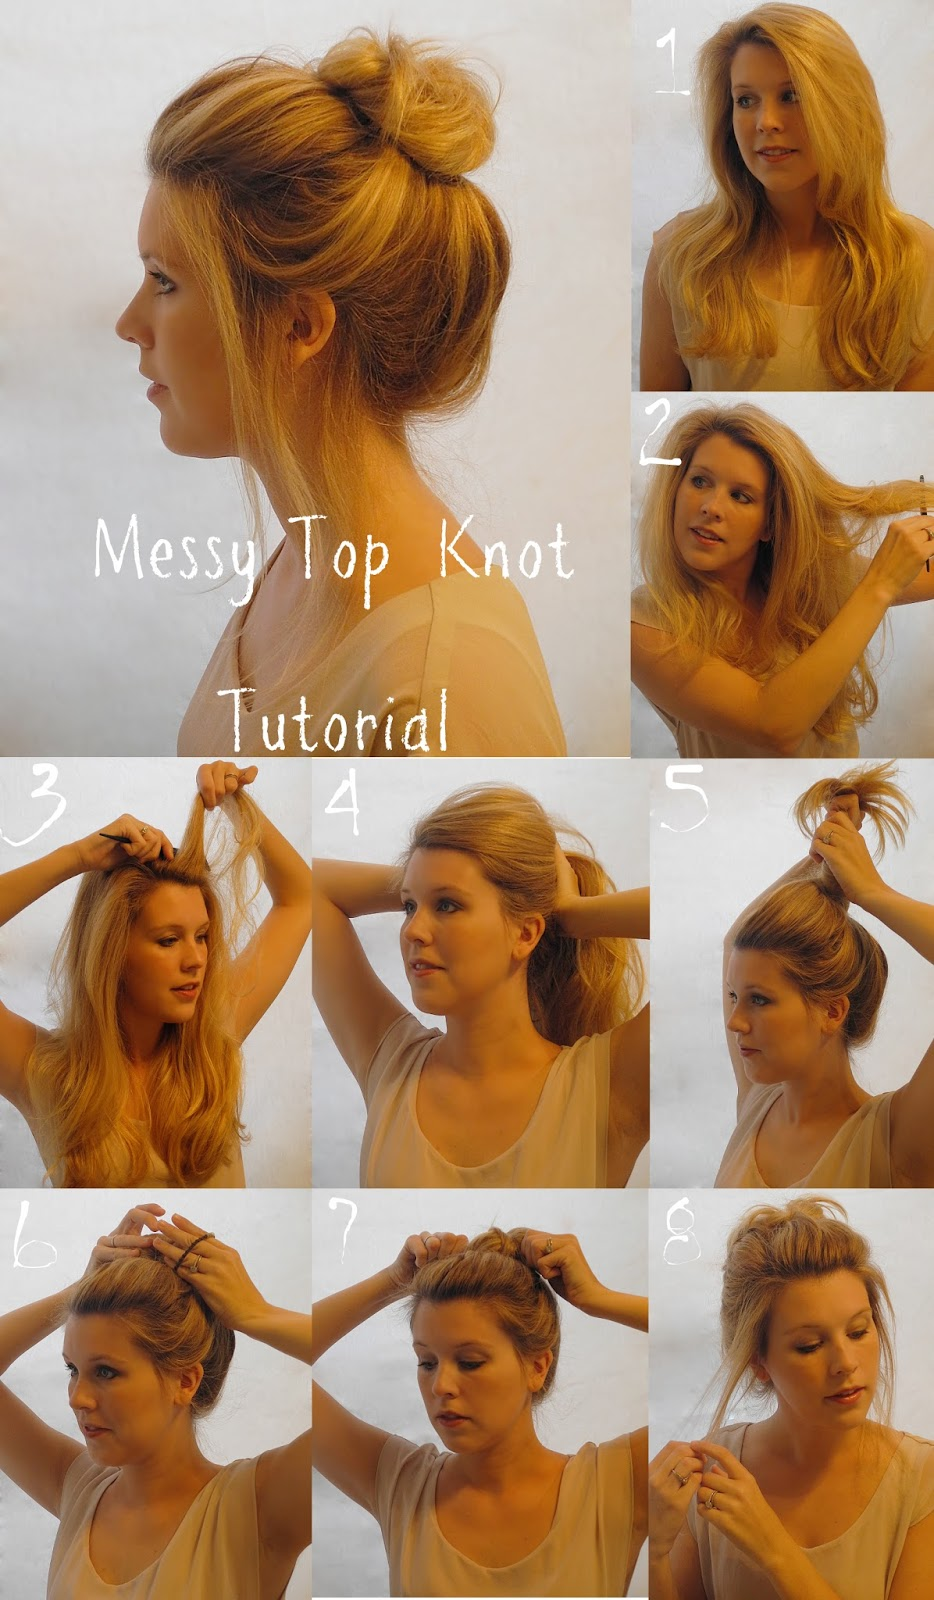 Forum on this topic: How to Make a Messy Bun, how-to-make-a-messy-bun/